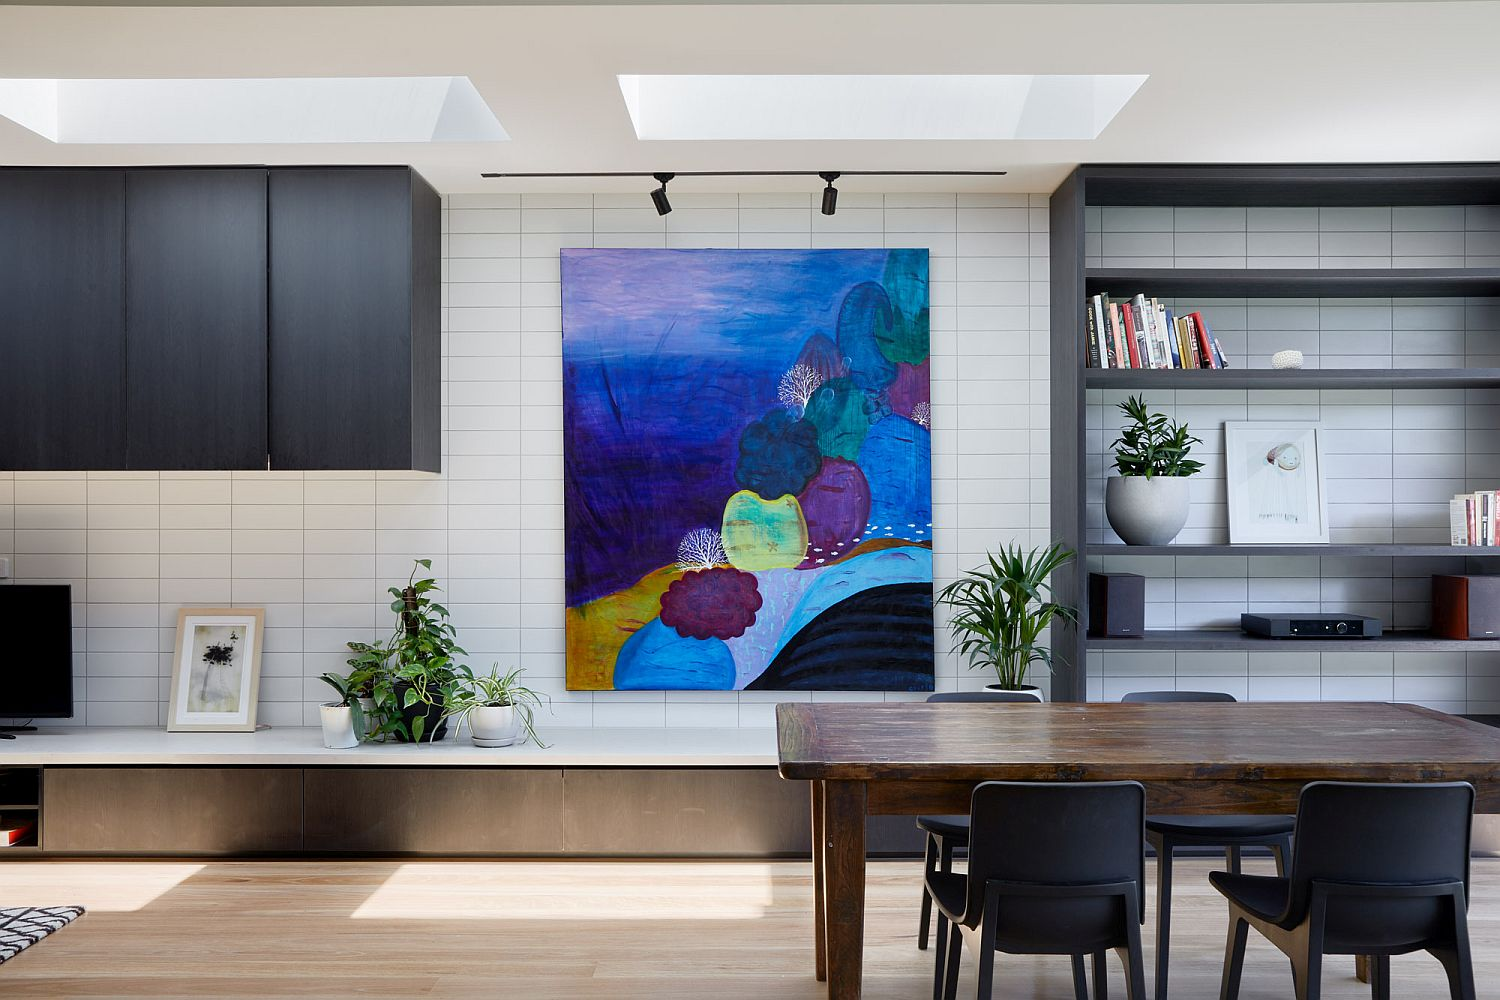 Bright wall art brings color to the neutral interior